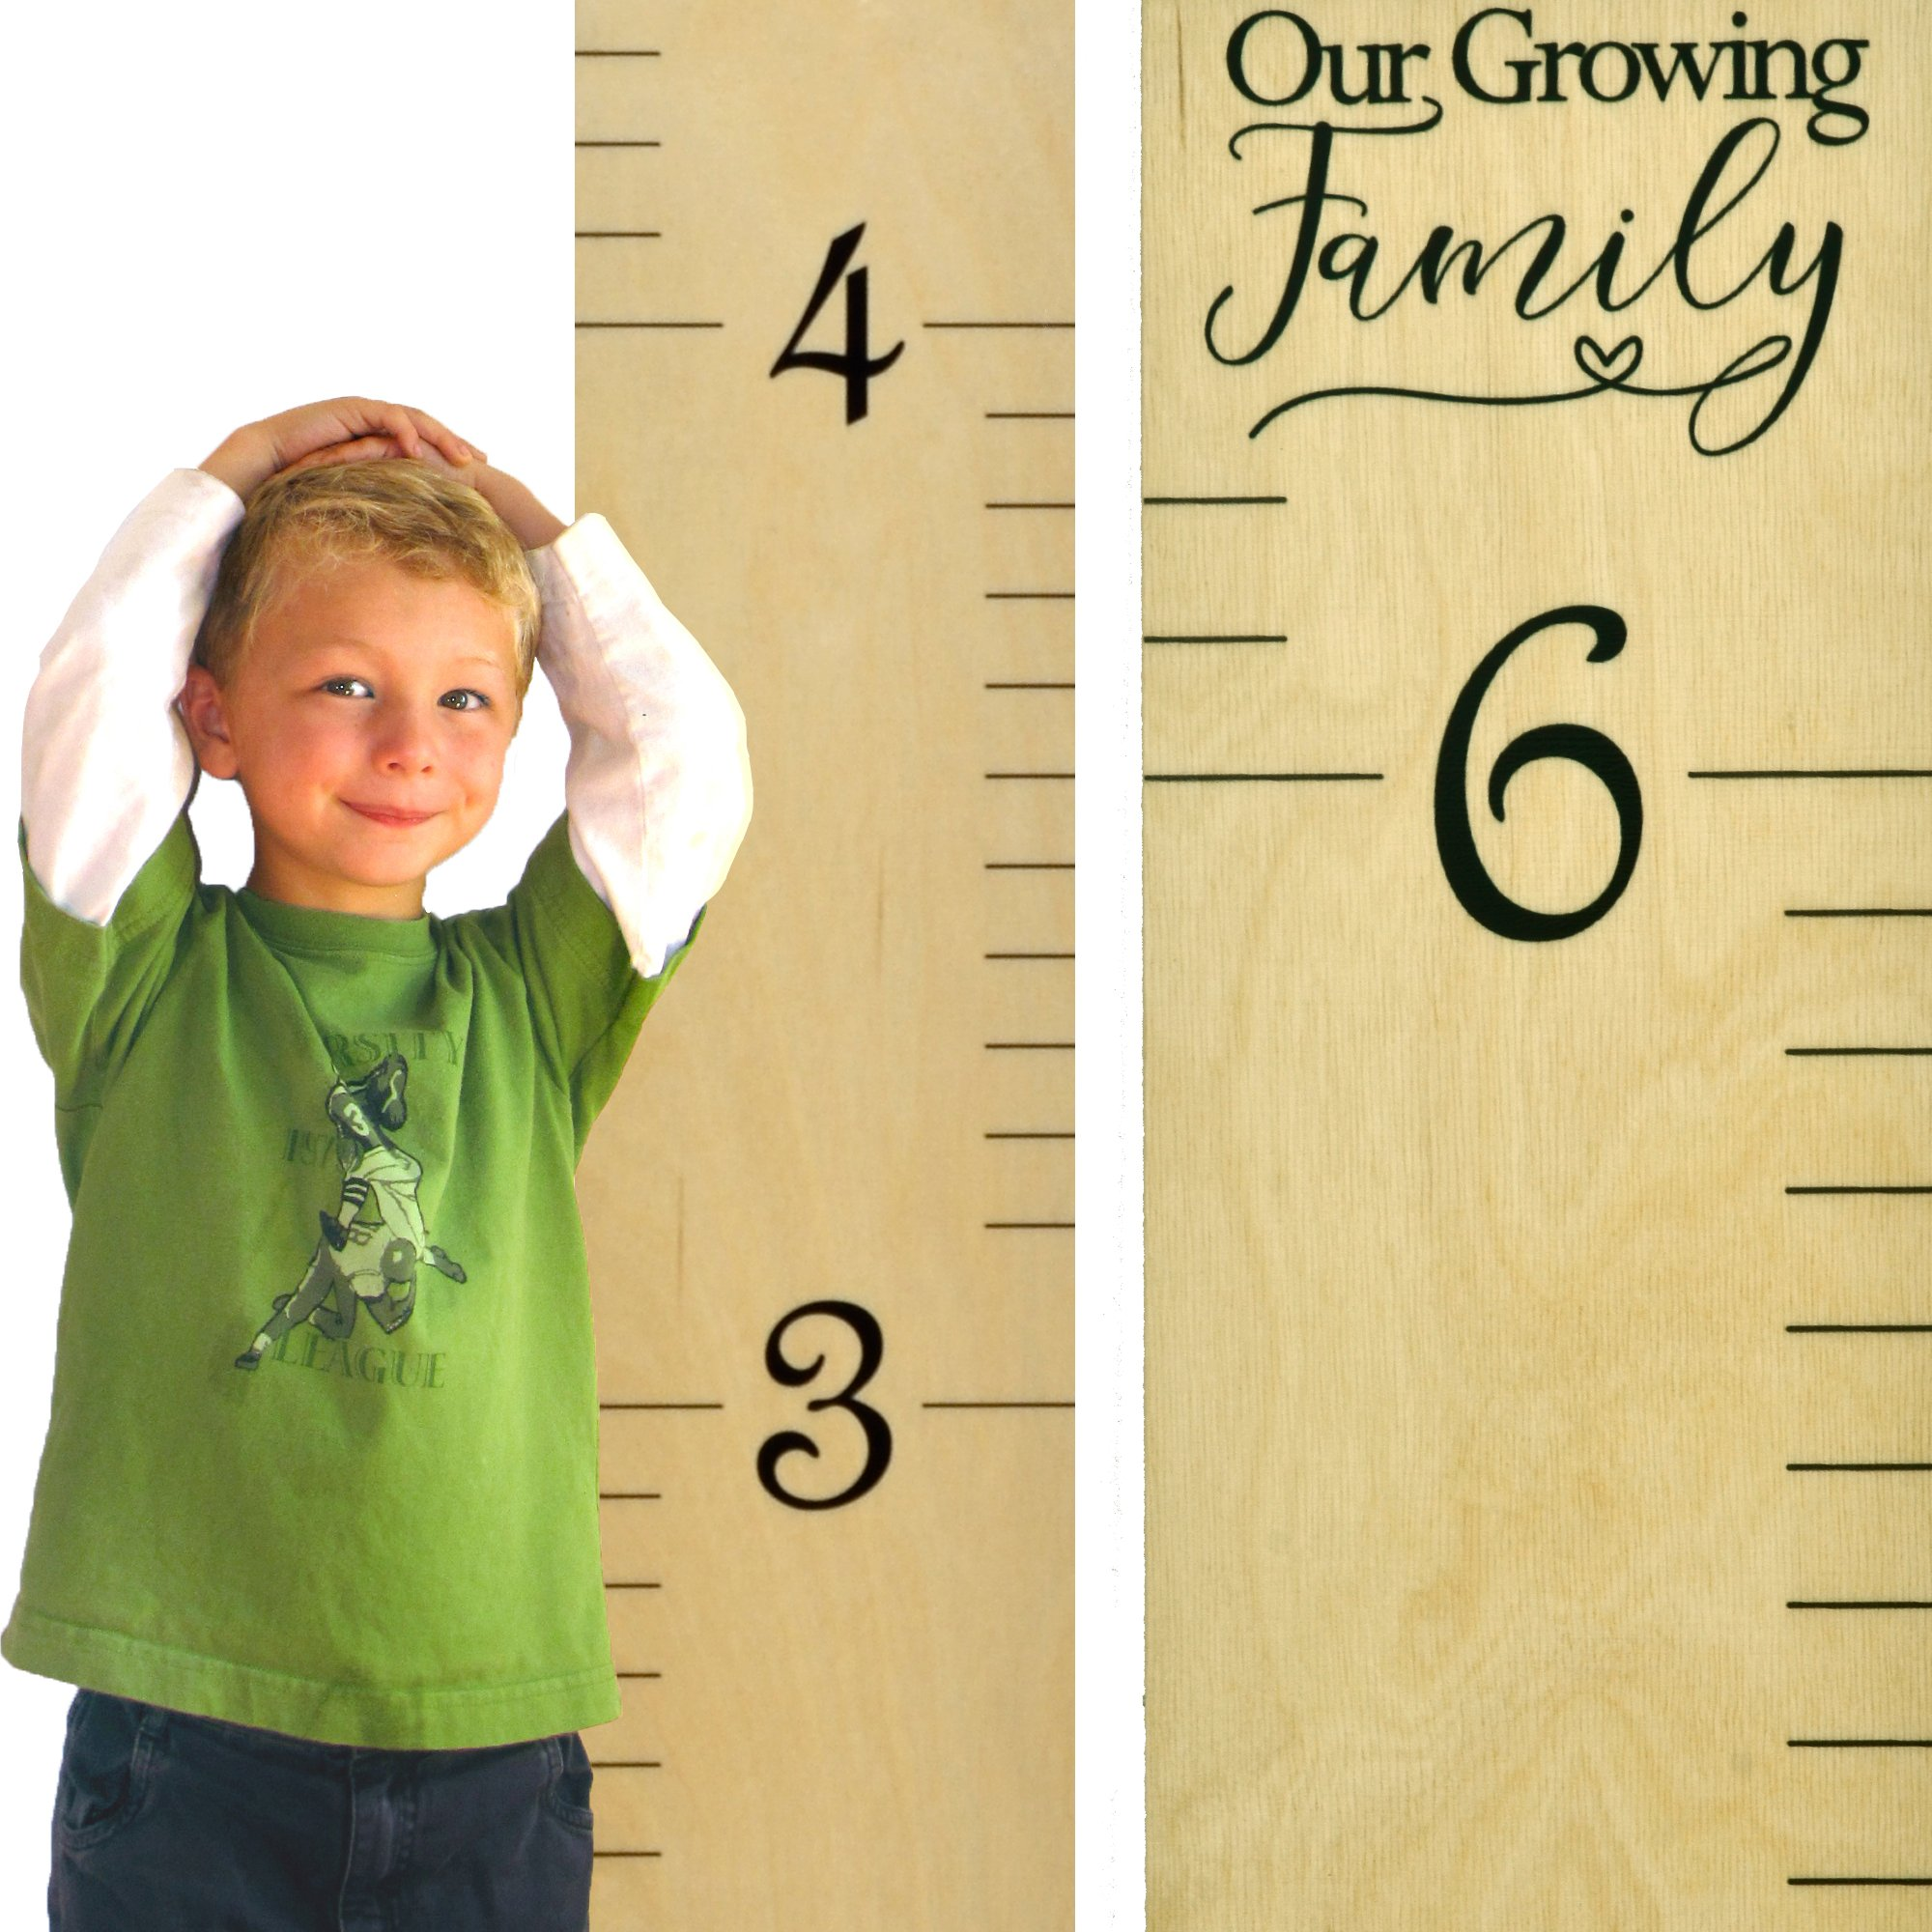 Cheap wooden growth ruler find wooden growth ruler deals on line at get quotations growth chart art hanging wooden ruler height growth chart to measure baby children geenschuldenfo Gallery